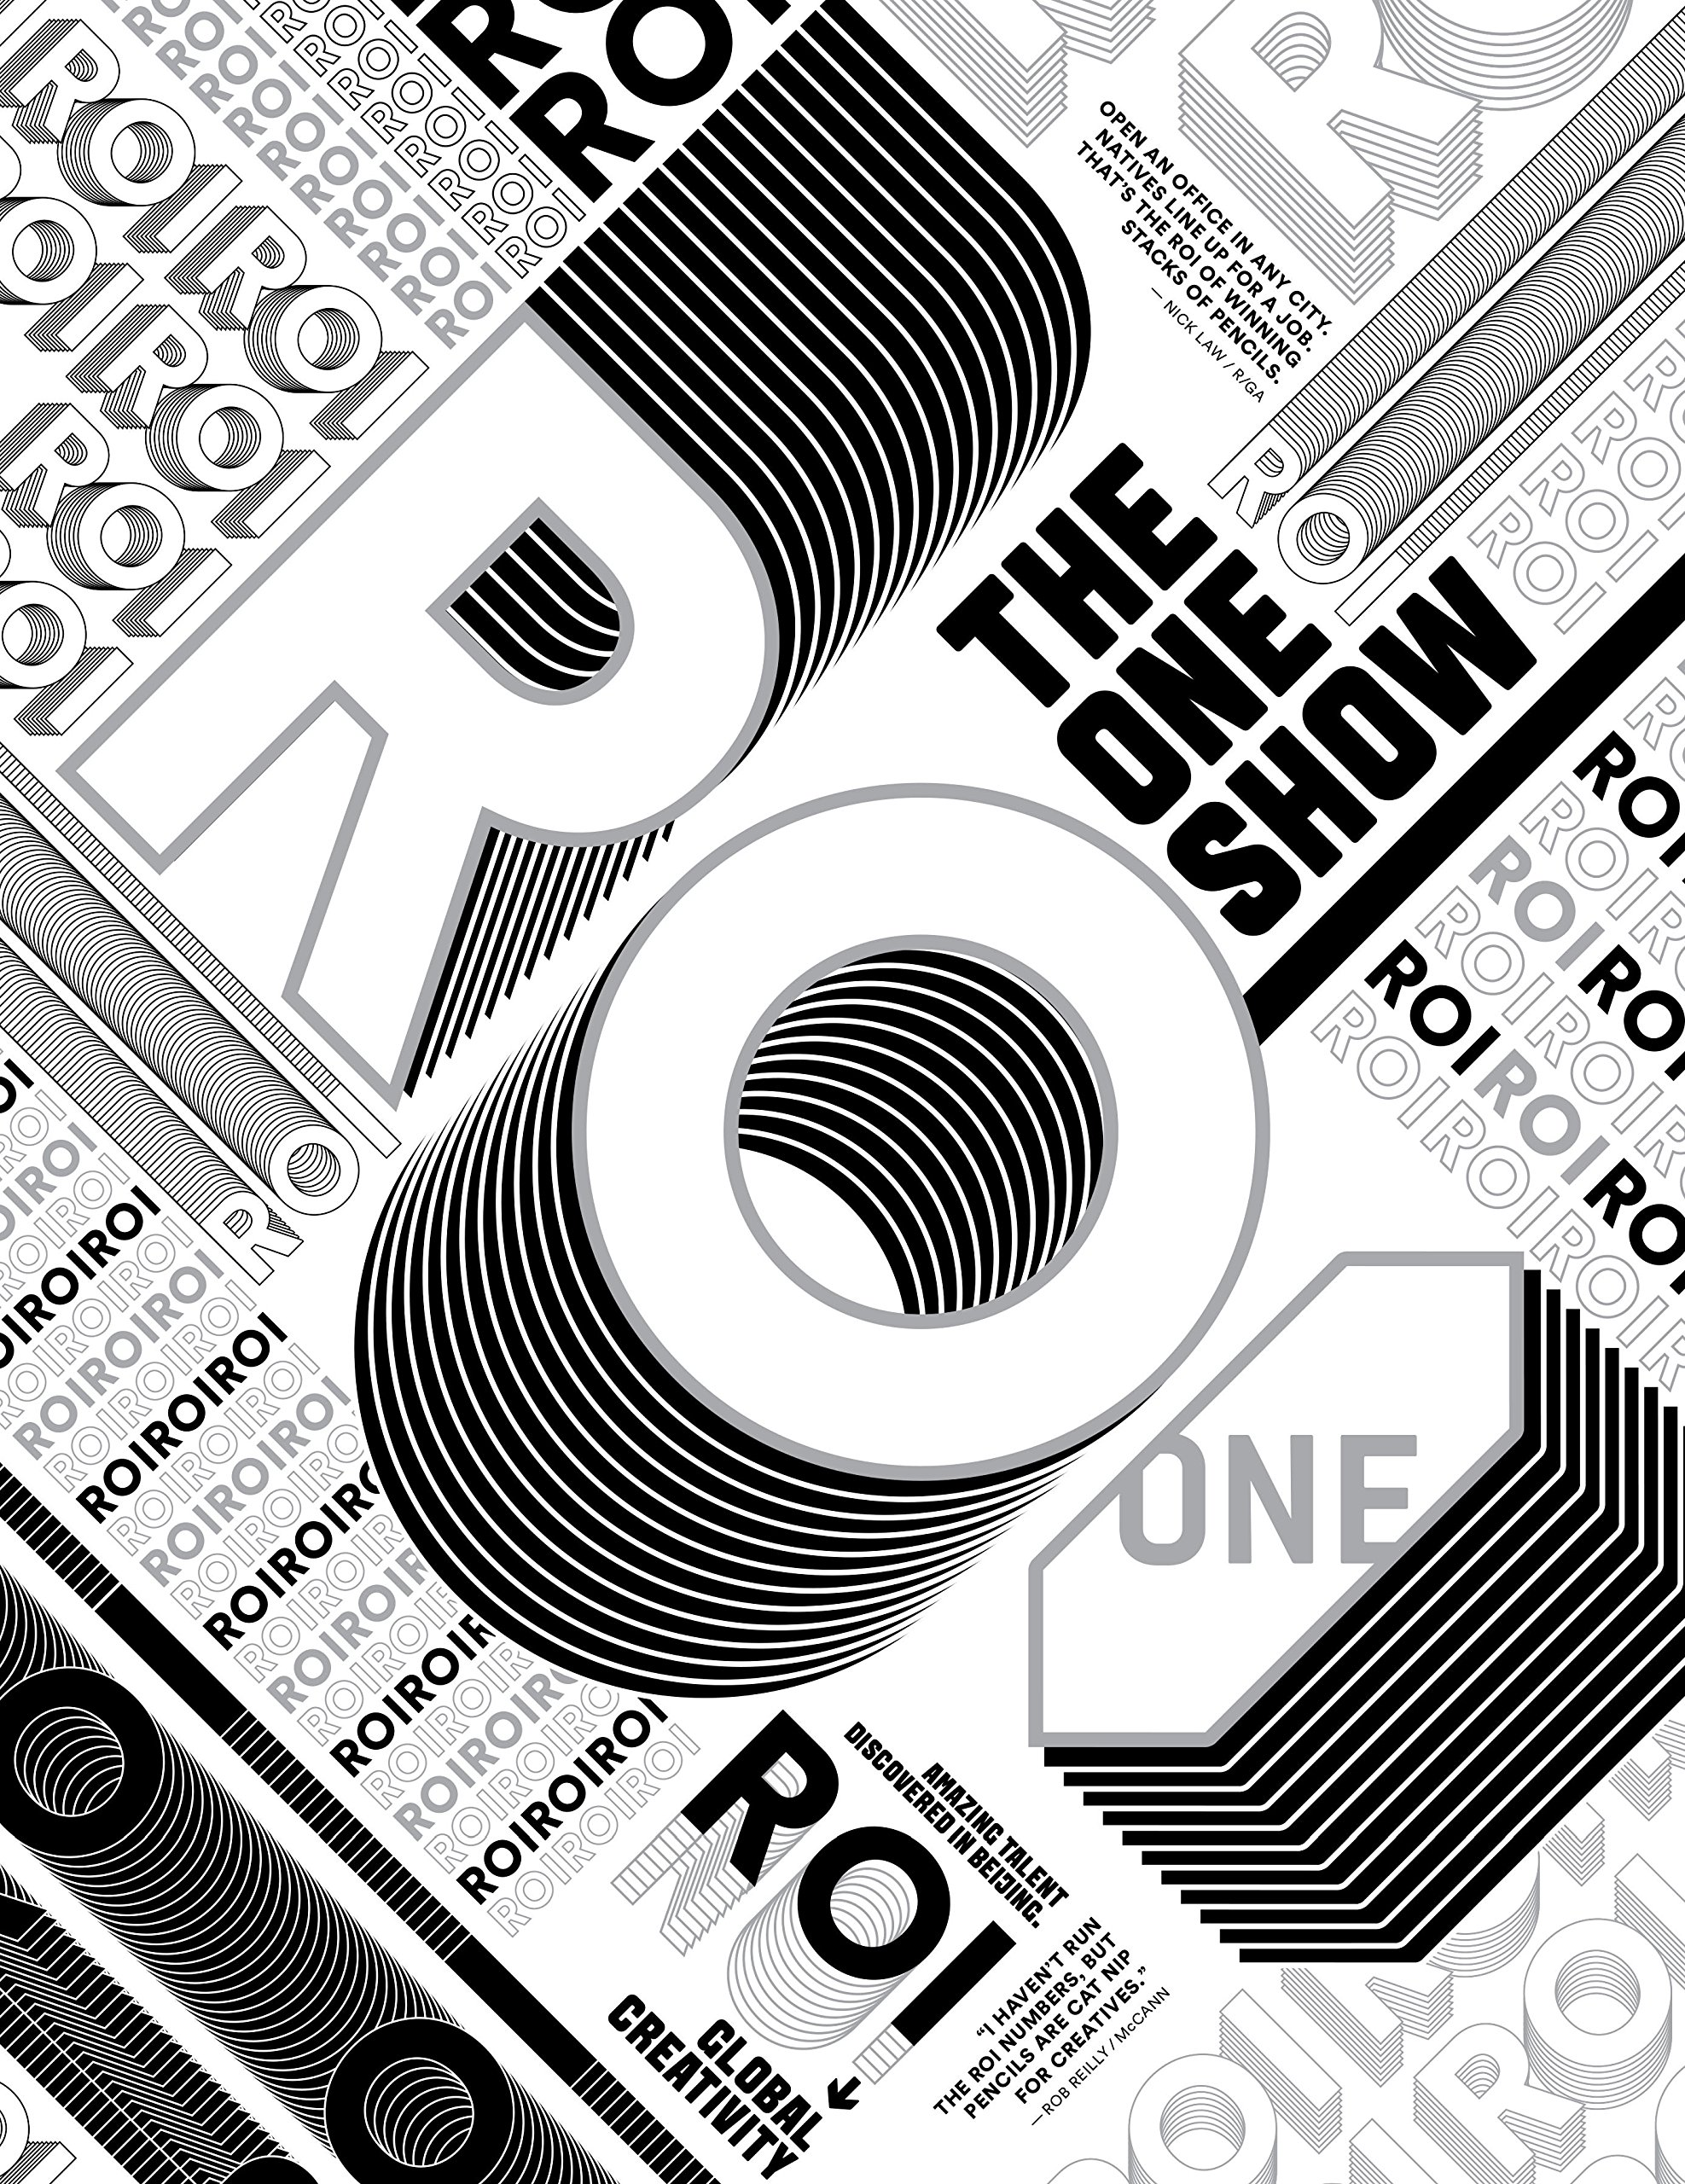 The One Show, Volume 37 (One Show Annual) pdf